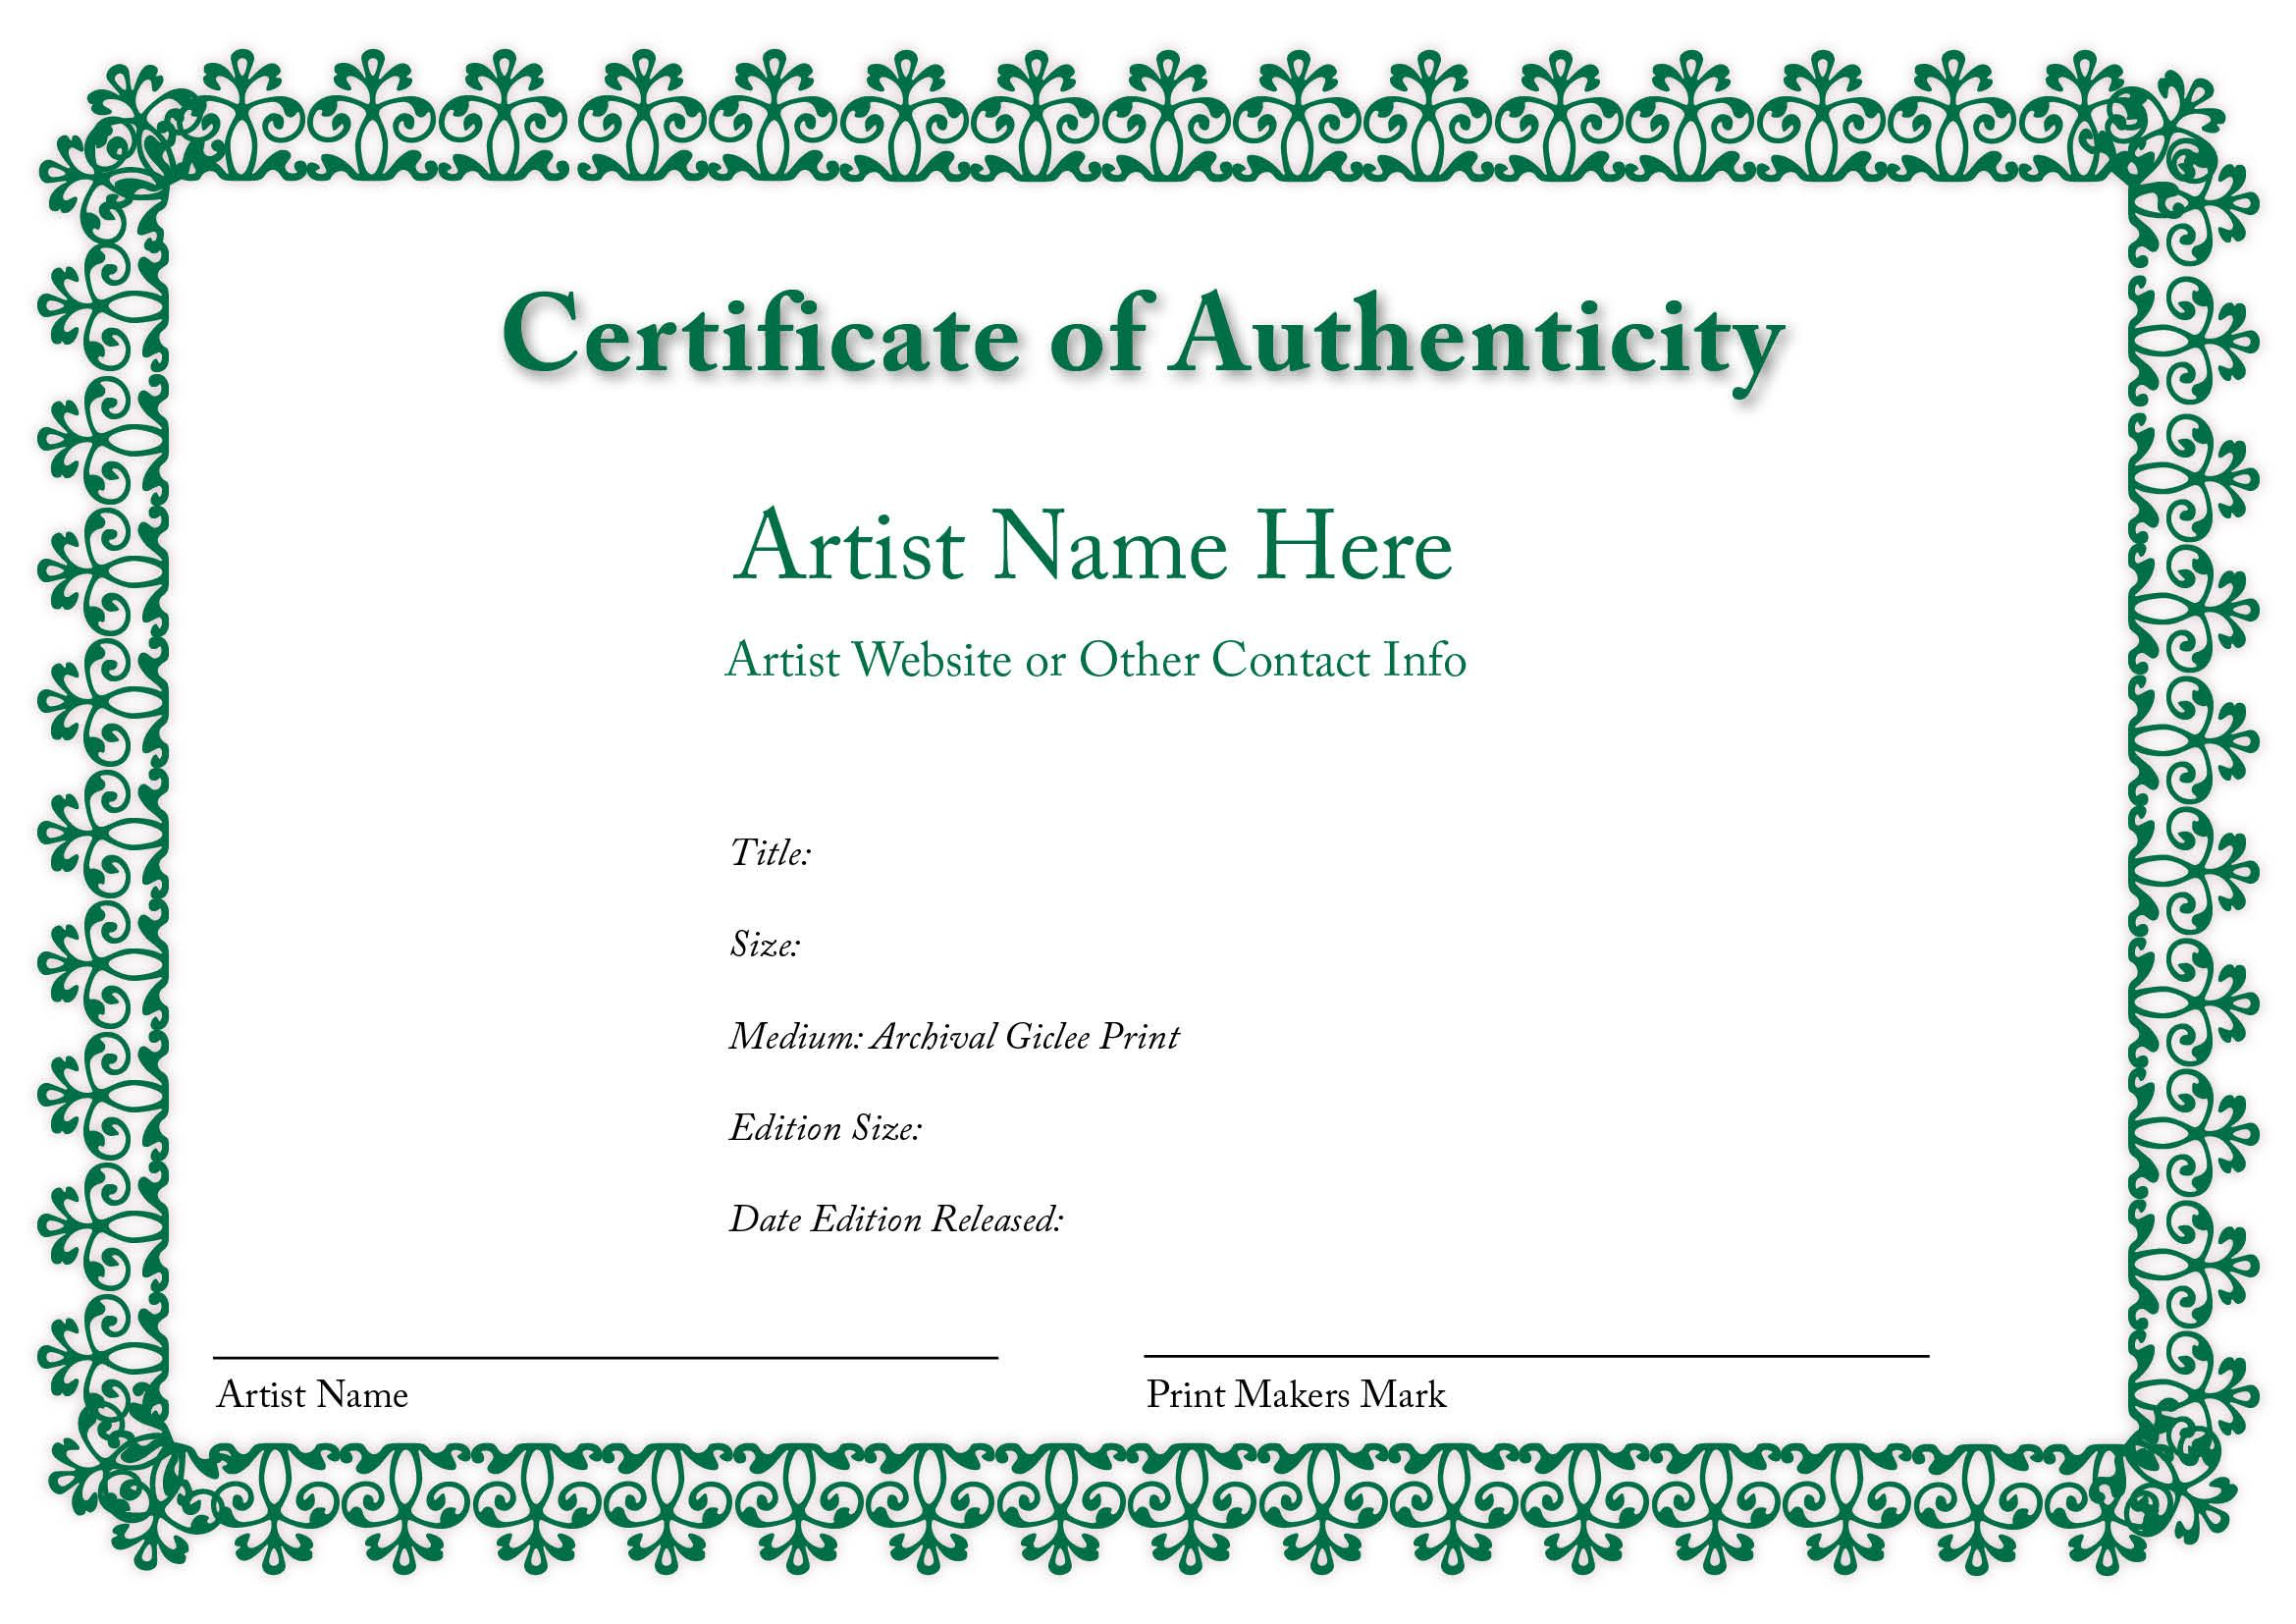 Blank Certificate Of Authenticity Limited Edition Prestige Your ArtworkNetwork Marketing Materials Collectors Photographers